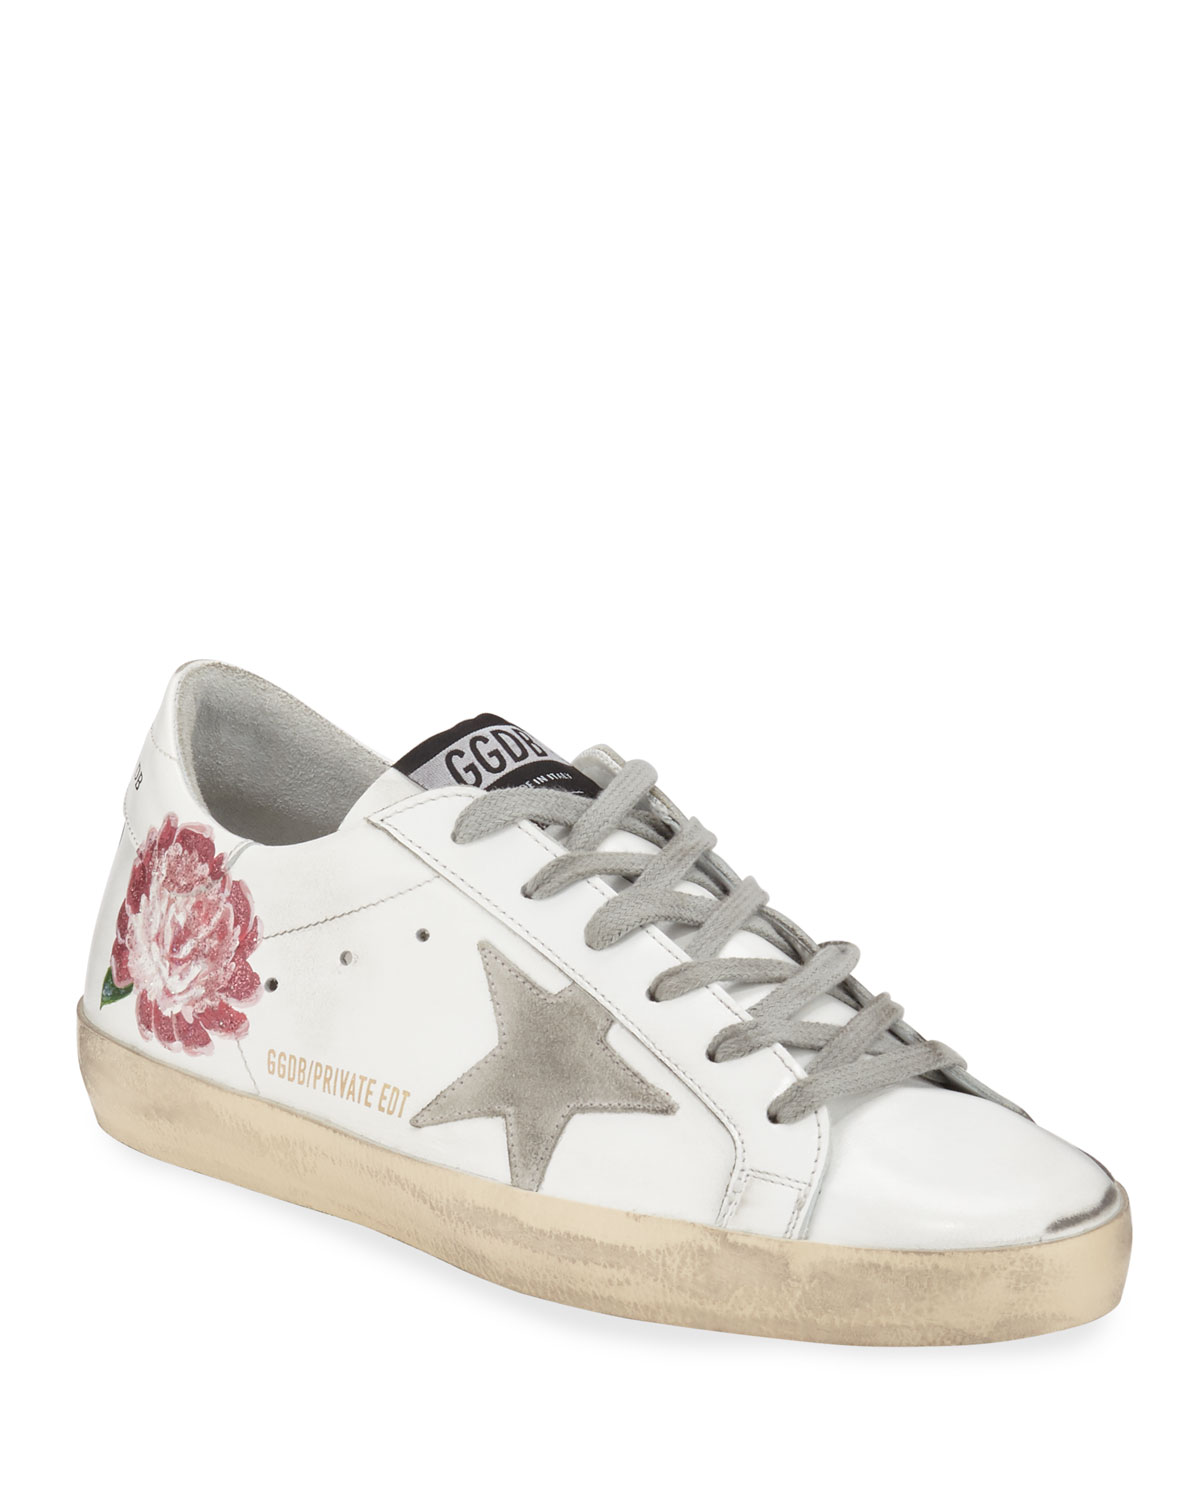 Superstar Peony Leather Low Top Sneakers